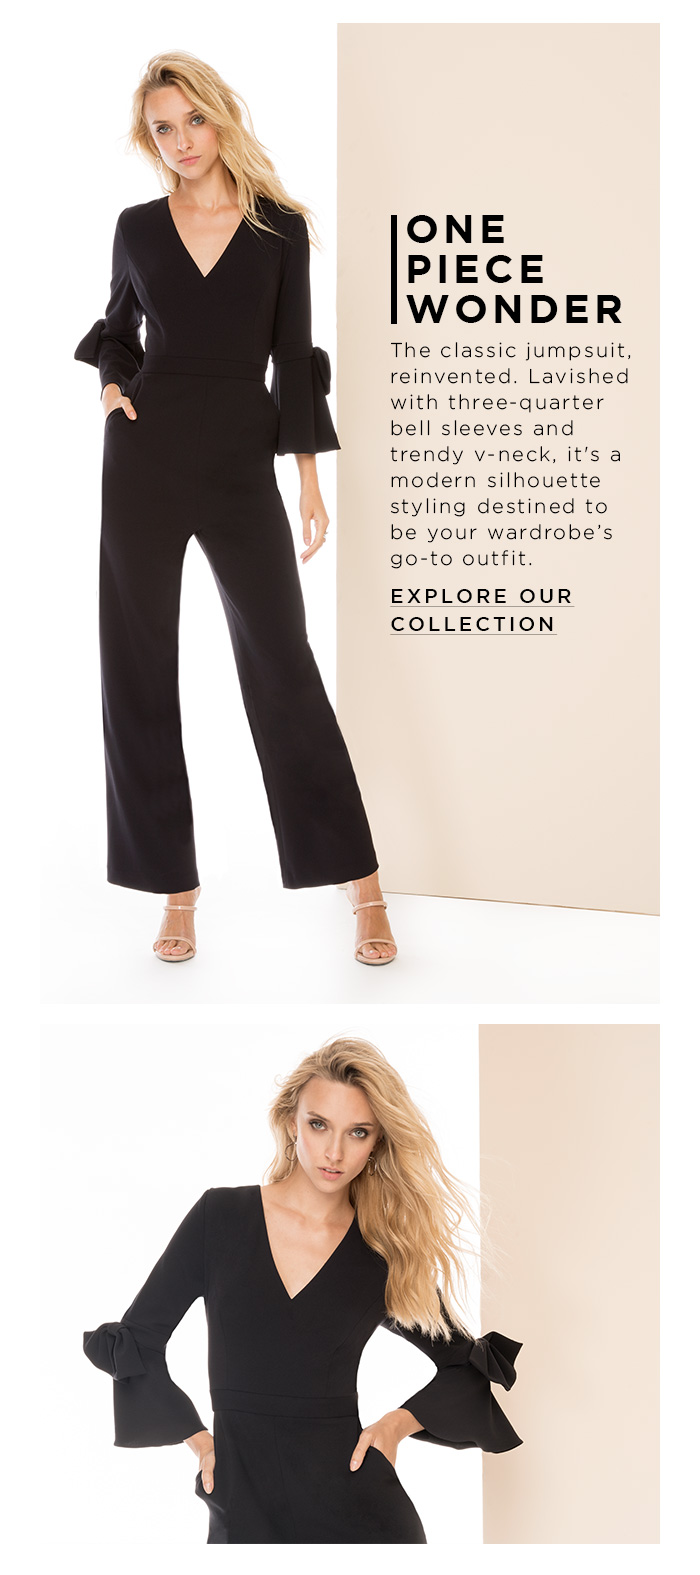 2f0e0838a9917 The classic jumpsuit, reinvented. Lavished with three-quarter bell sleeves  and trendy v